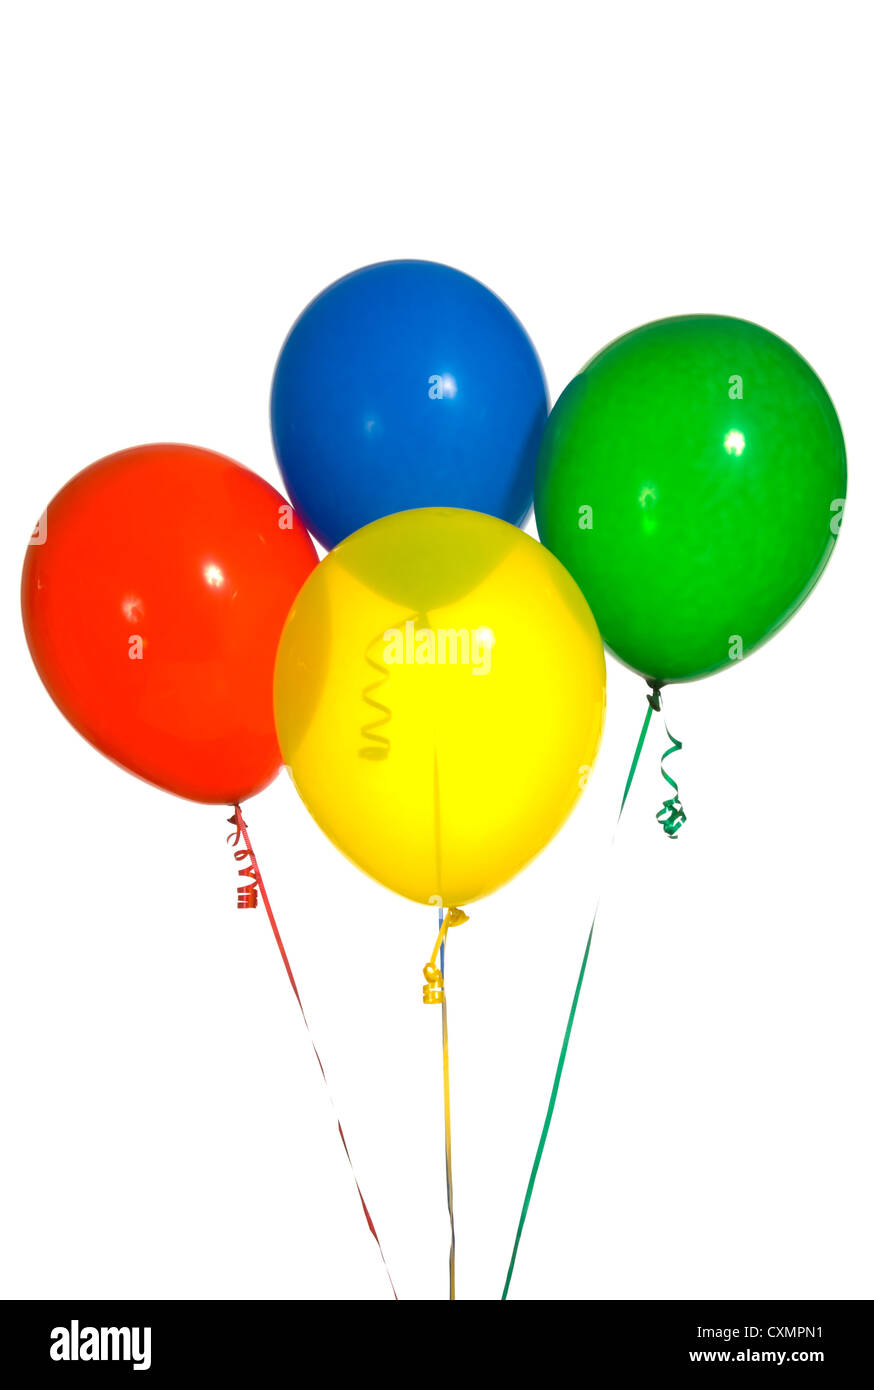 primary color balloons arranged in a bouquet for a birthday party or